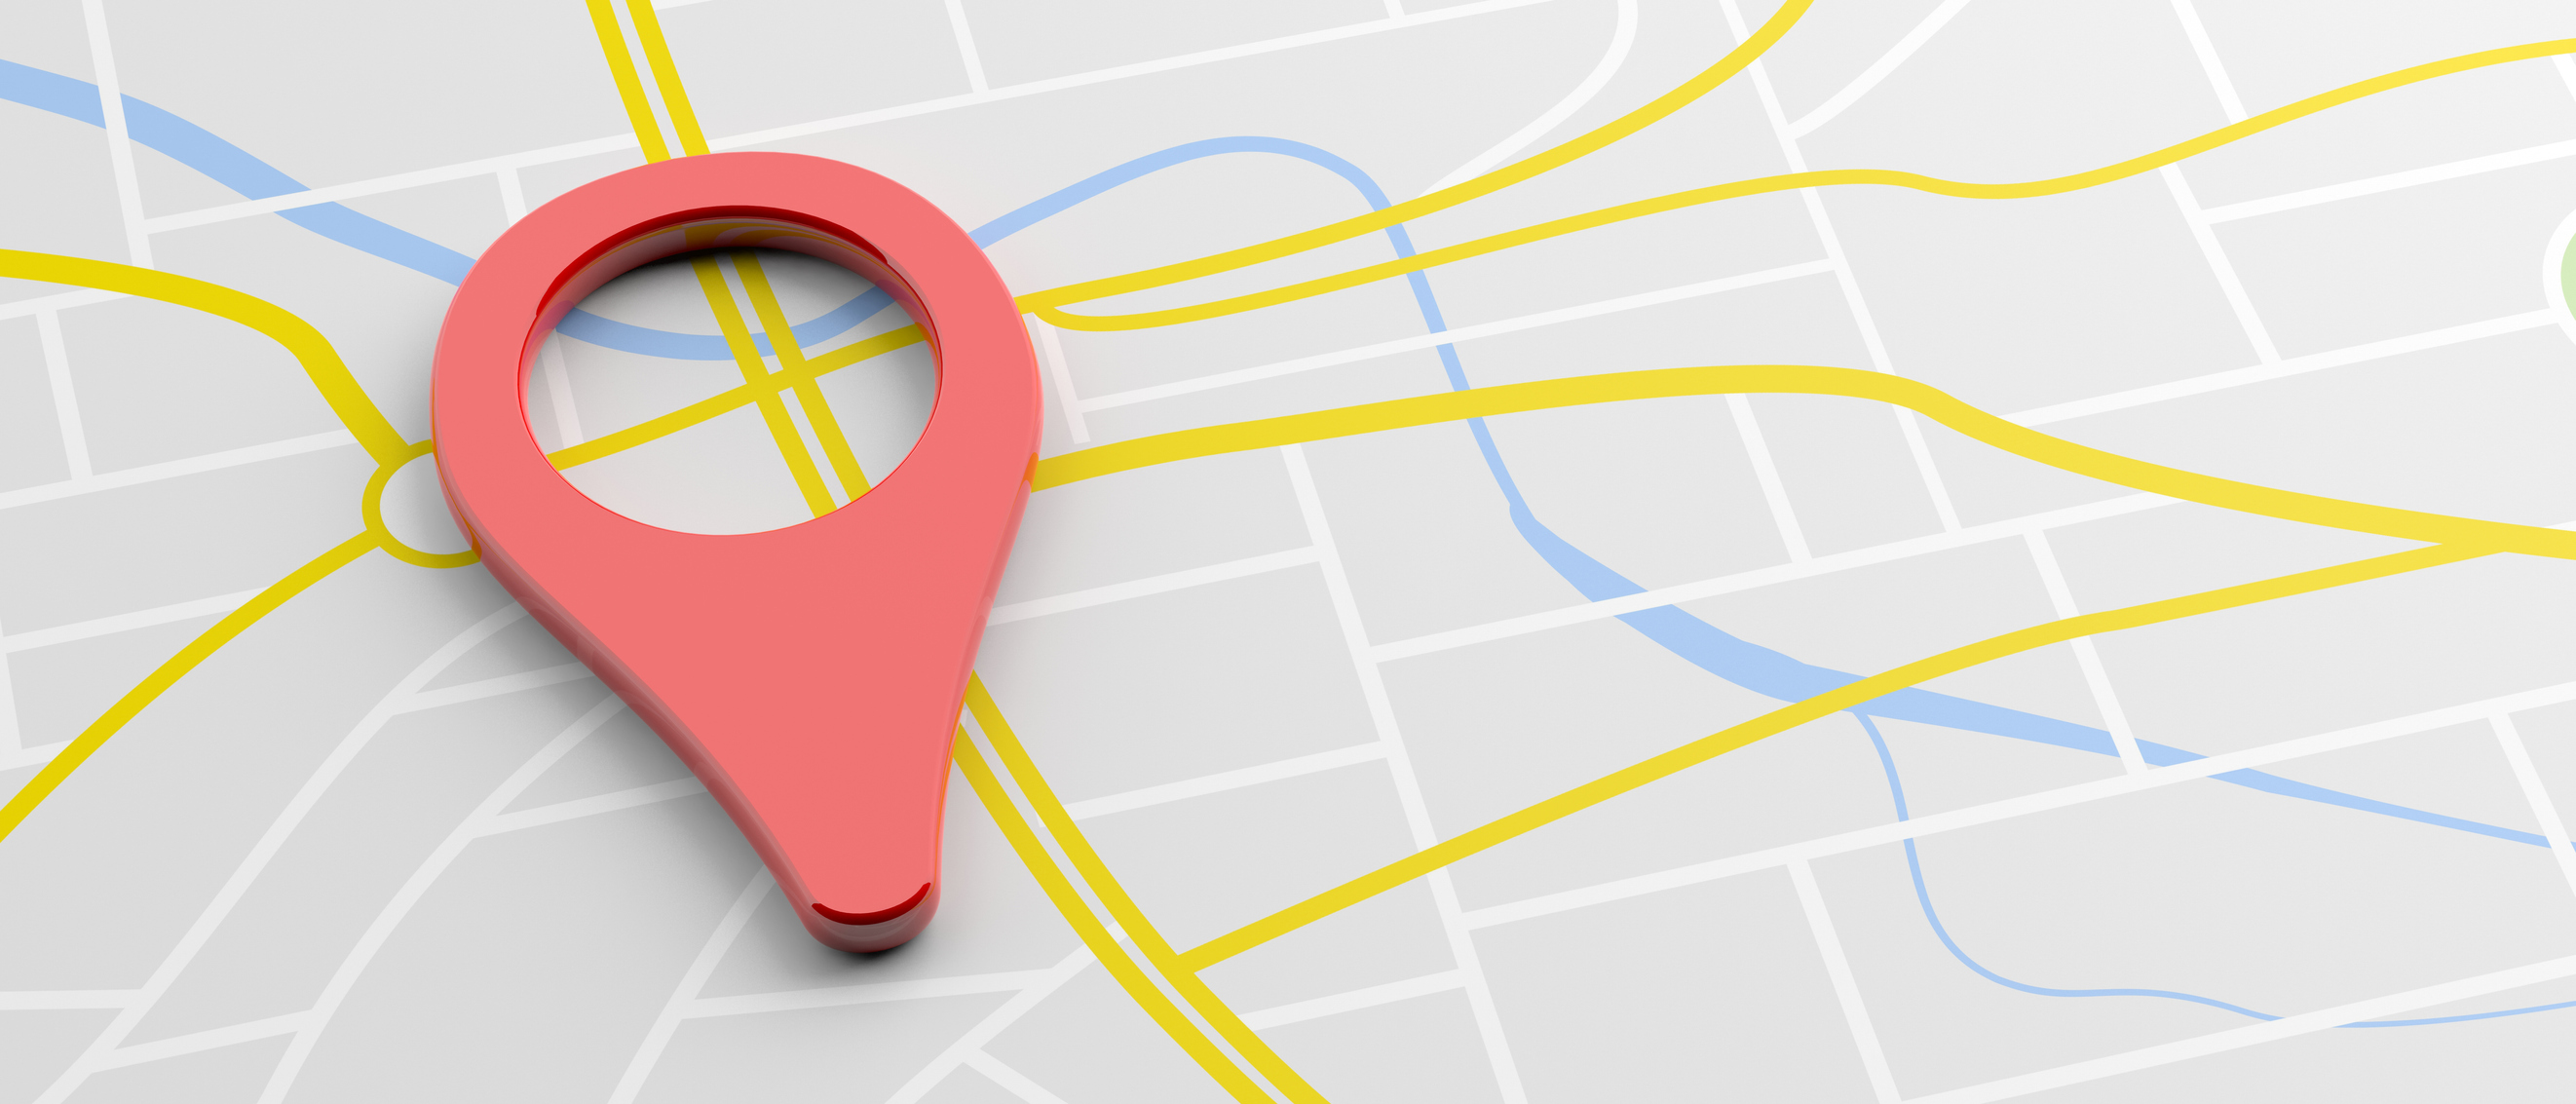 Image of a map with a magnifying glass on top, indicating a local search for a financial advisory firm